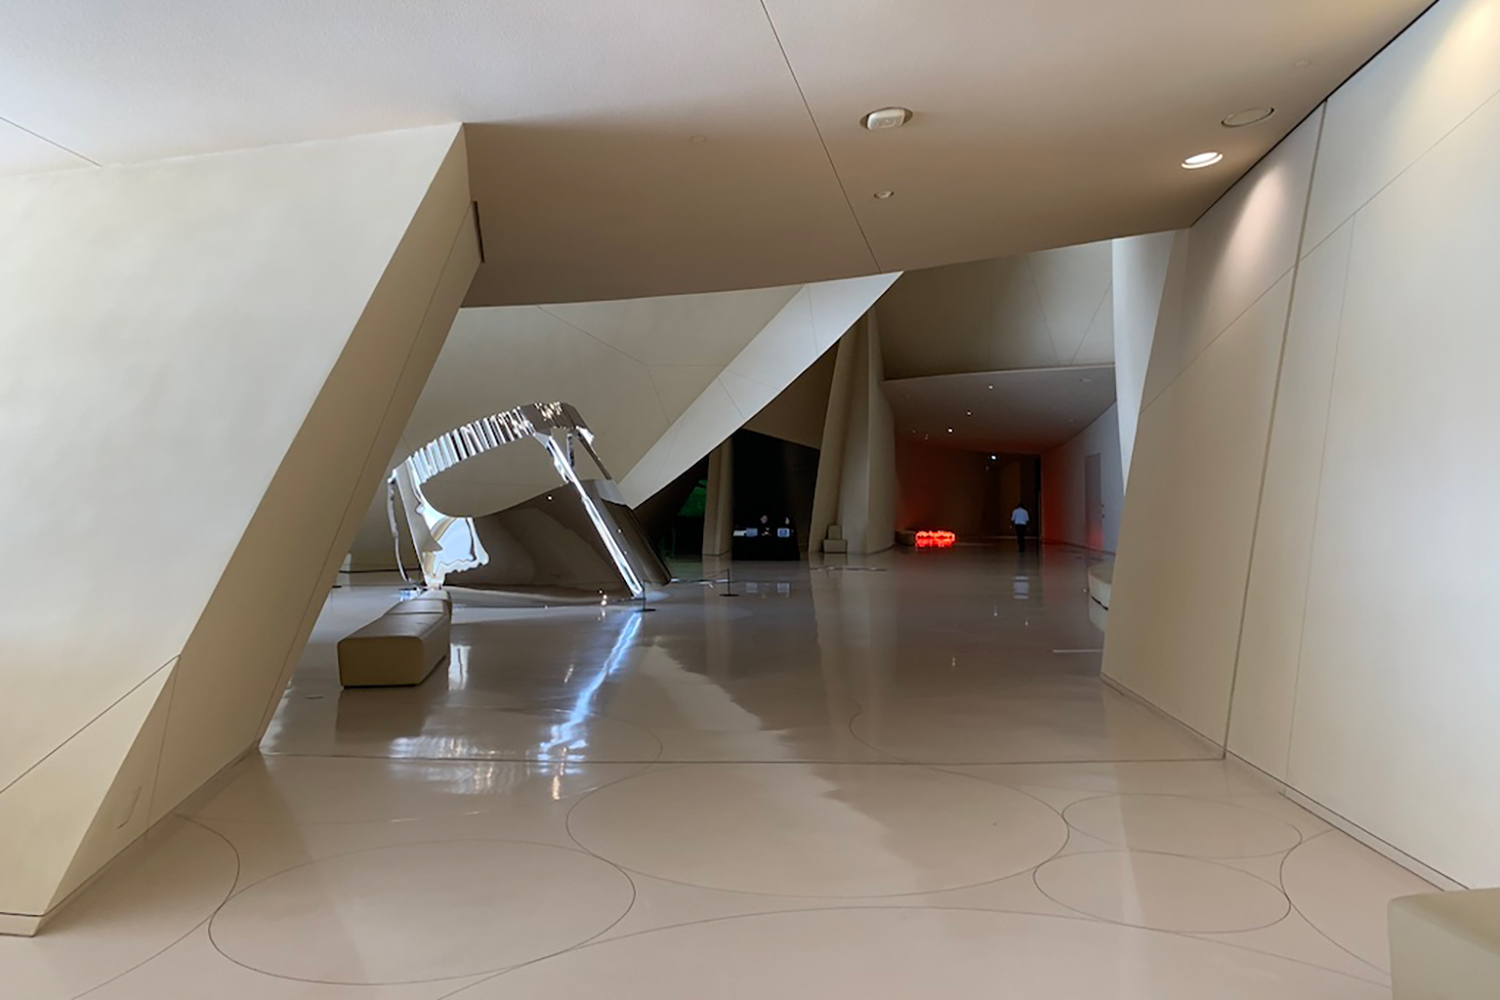 The National Museum of Qatar. WSDG was contracted to create a 3-D acoustic model of the space and make recommendations regarding appropriate speaker usage and placement. Interior.